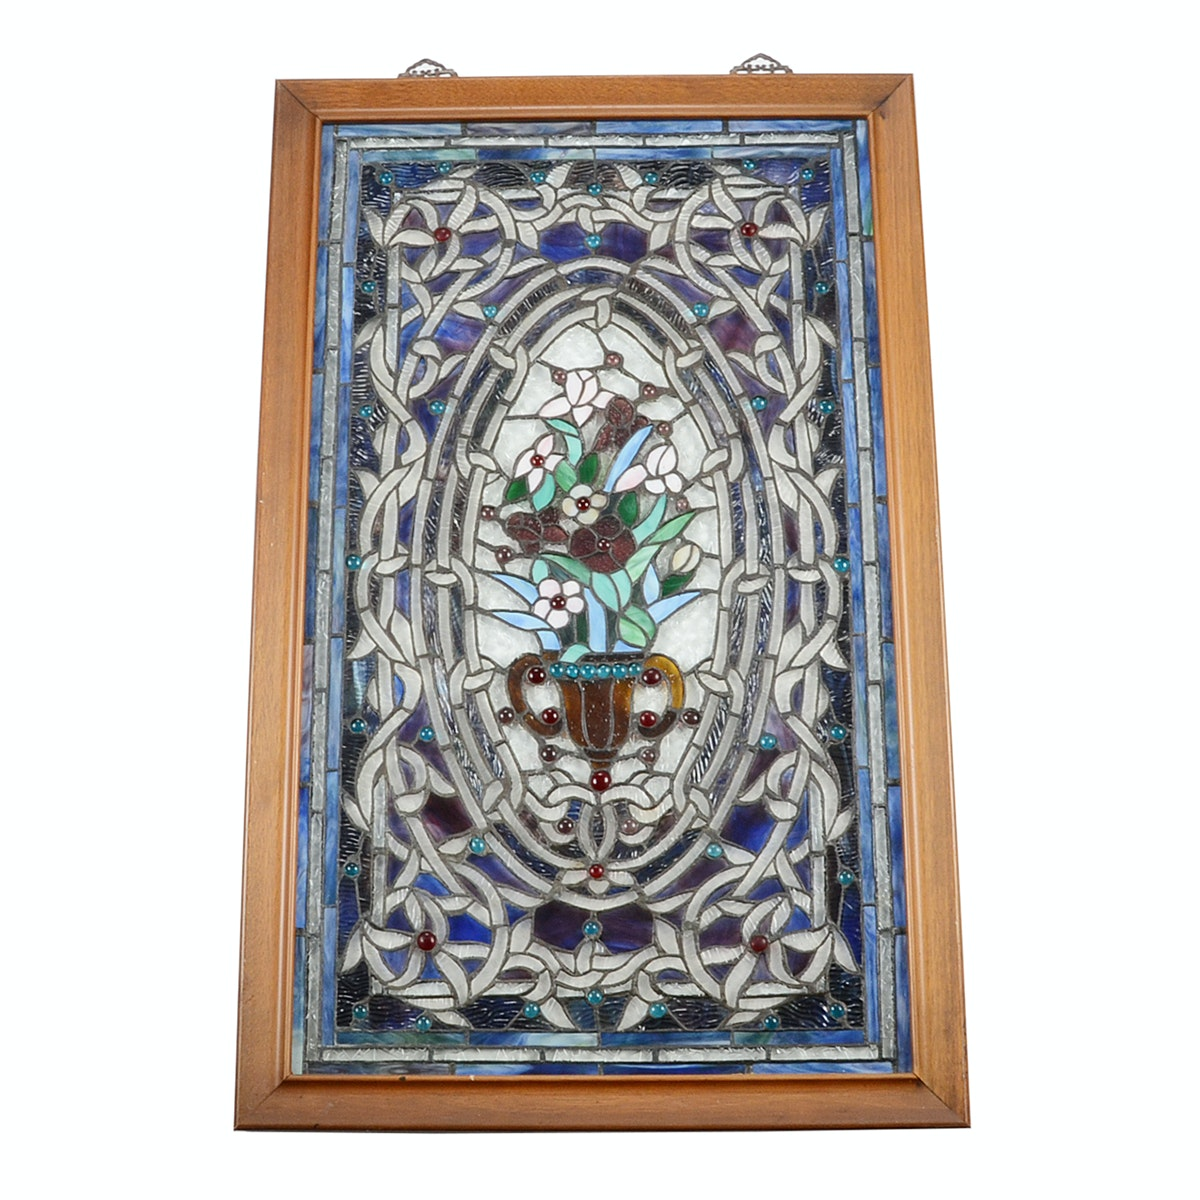 Hand-Crafted Copper Foiled Stained Glass Panel